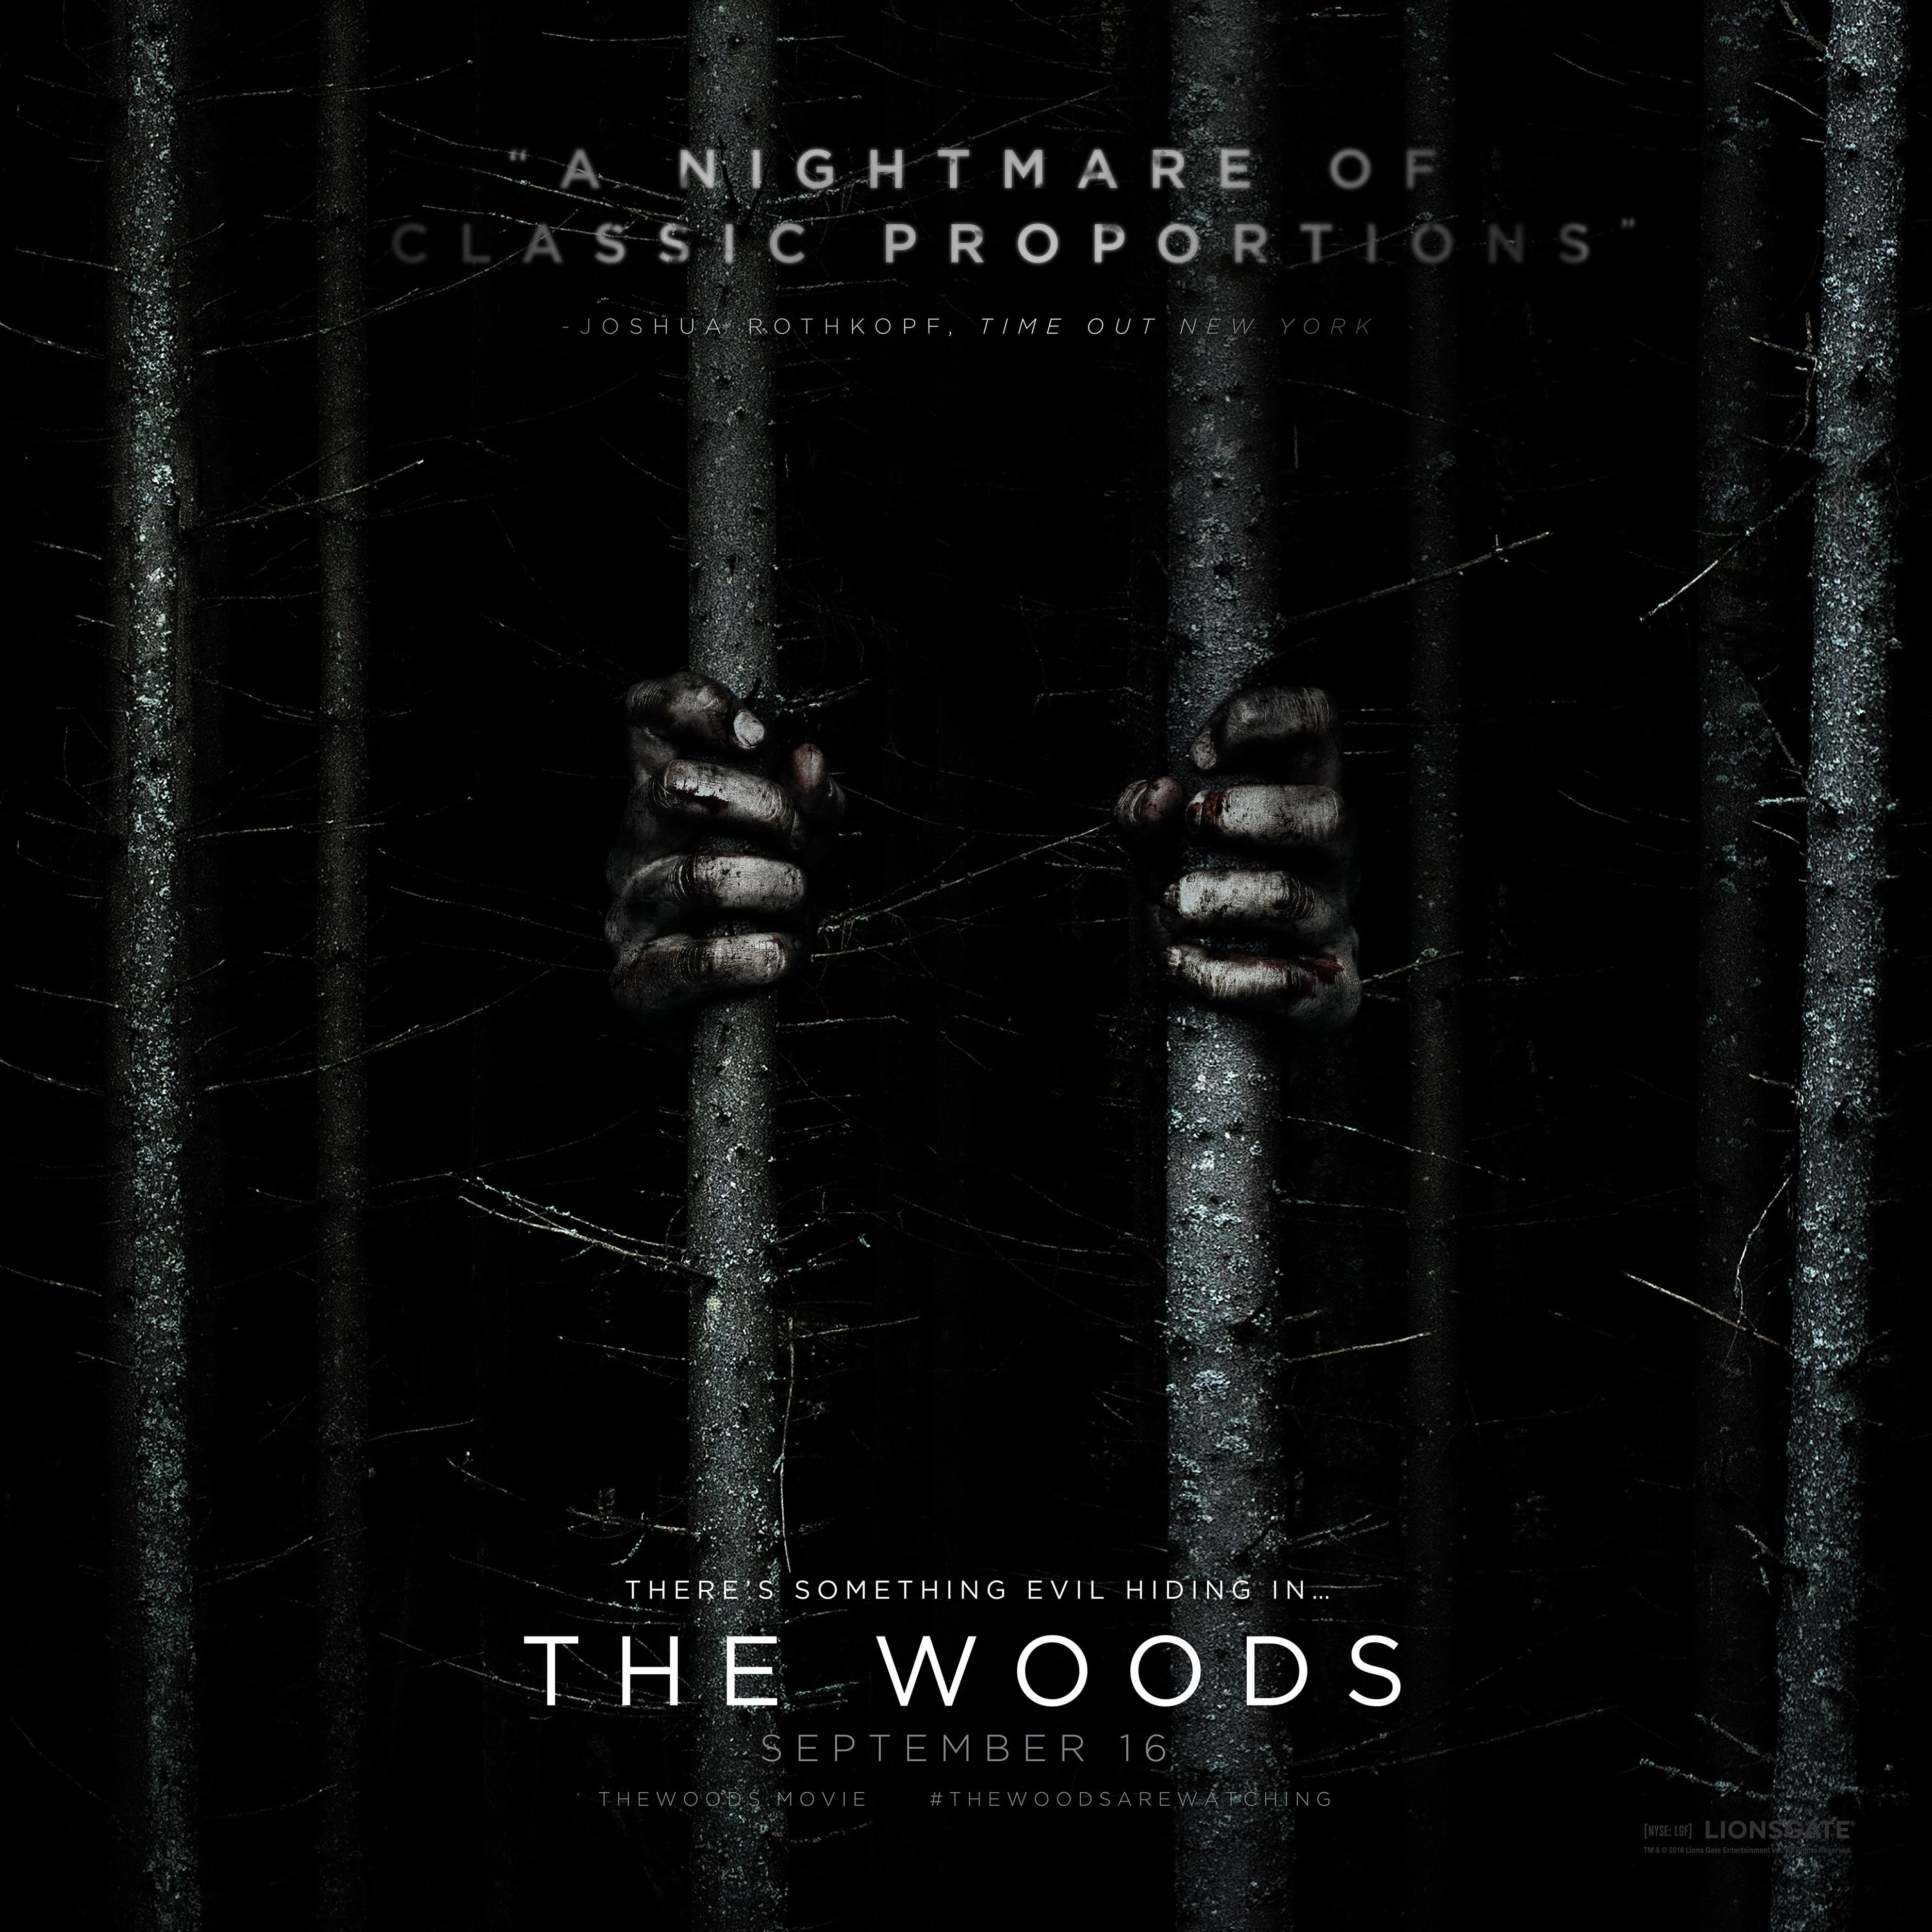 the woods poster e1572002324764 The Blair Witch Project: 20 Behind-The-Scenes Nuggets That Made It The Most Successful Film Ever